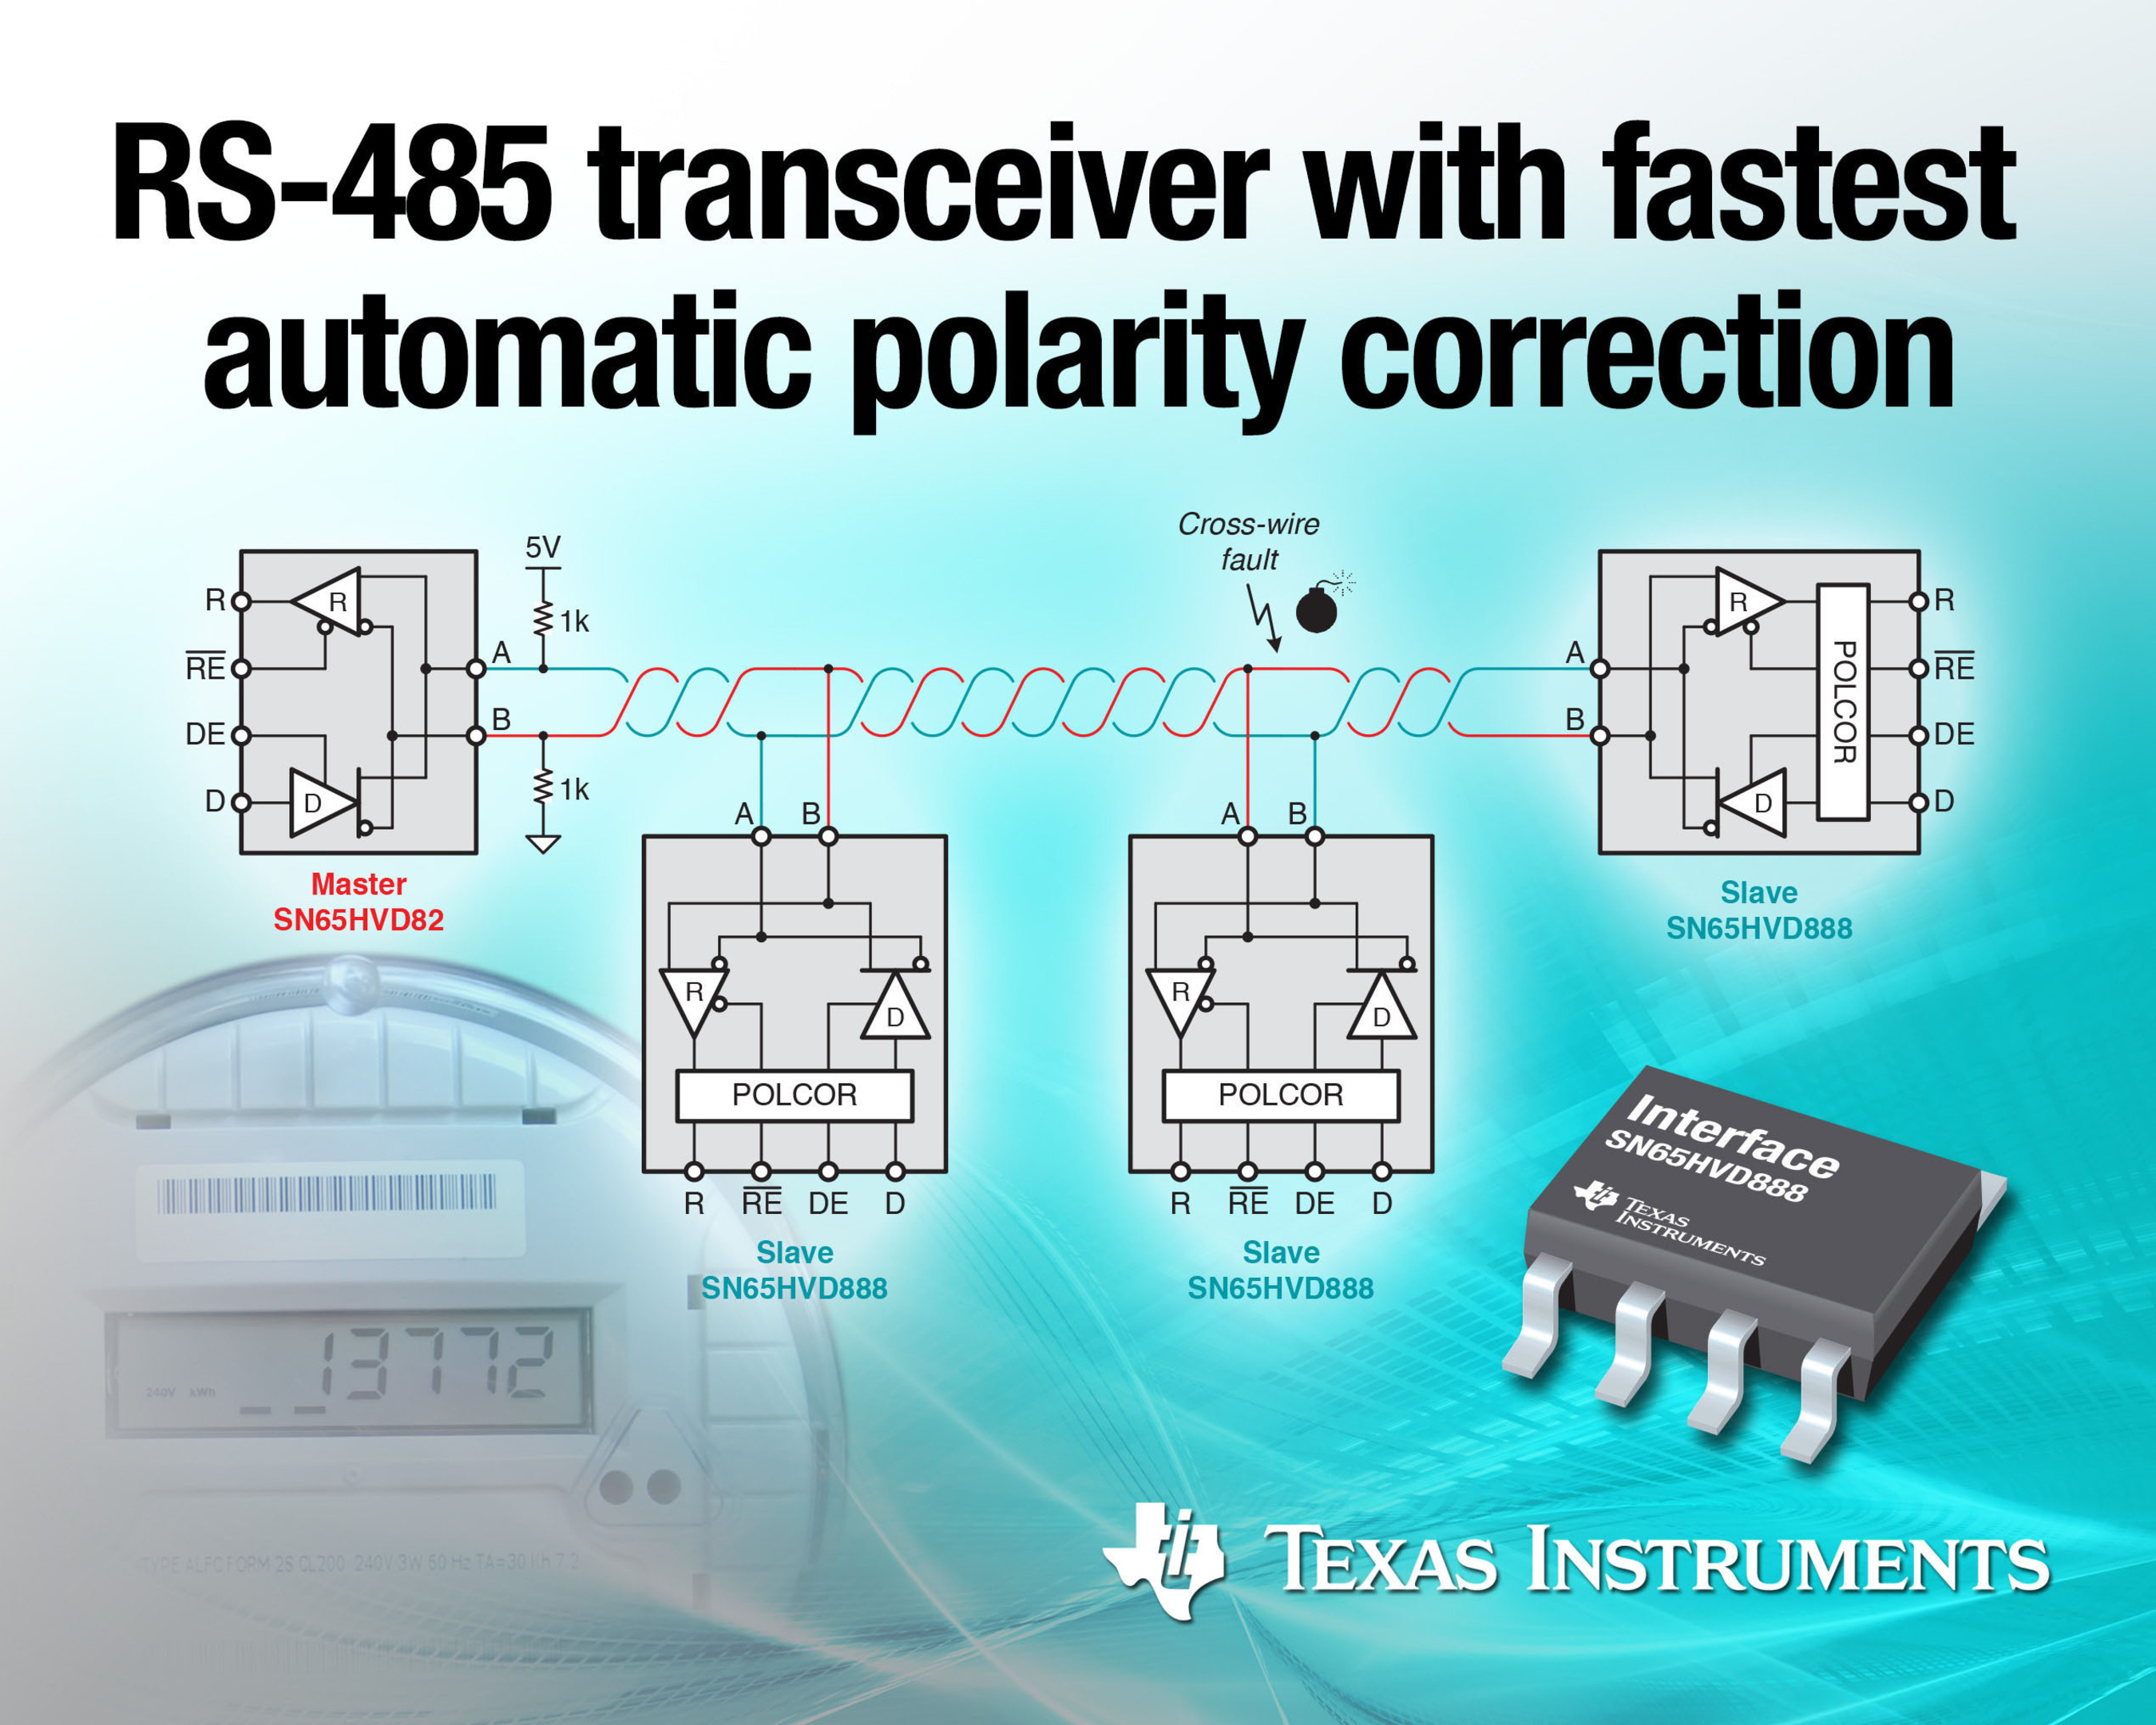 TI introduces RS-485 transceiver with fastest automatic polarity correction